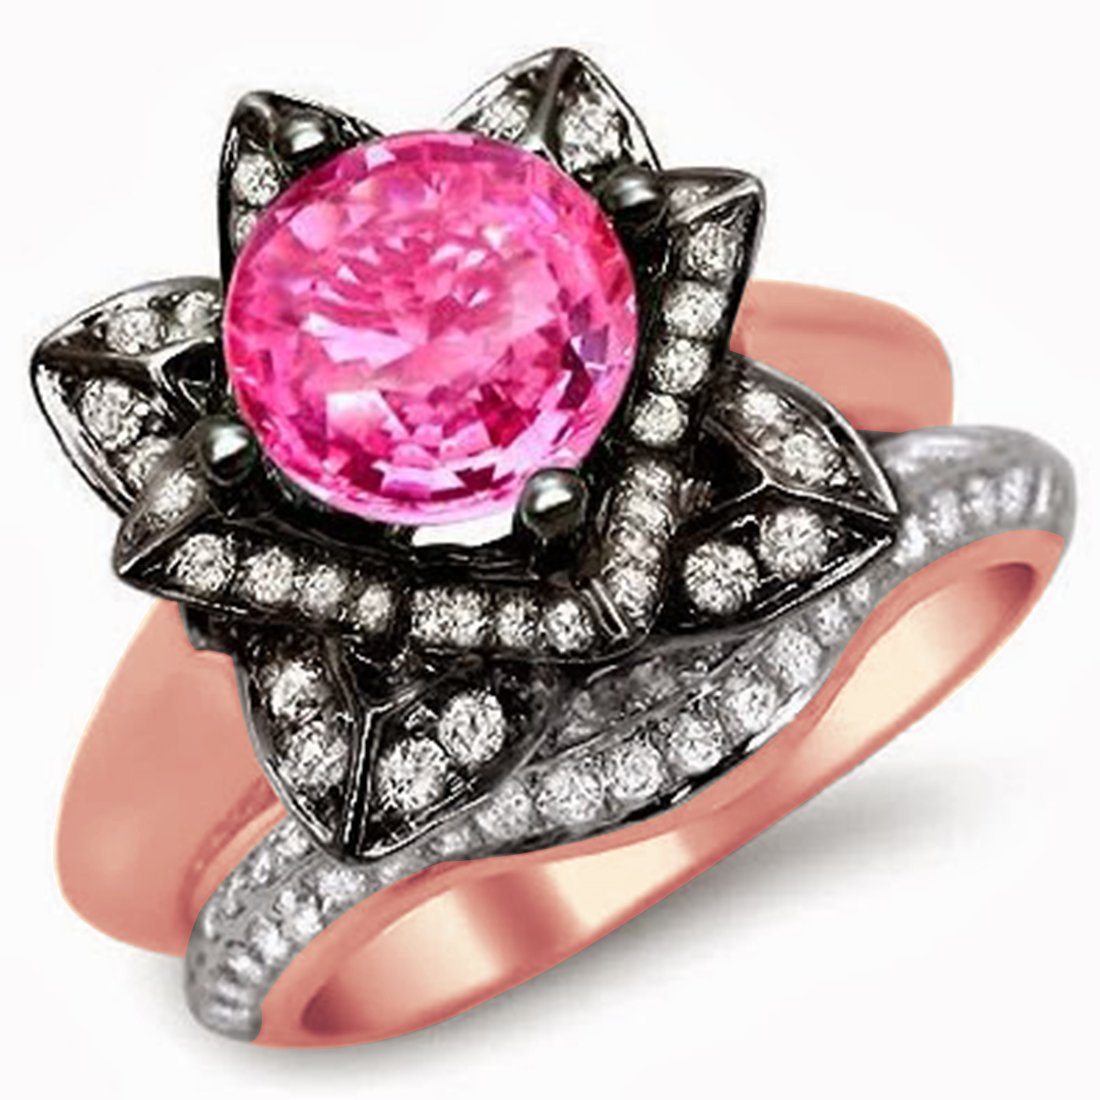 Smjewels 3.35 Ct Round Pink Sapphire Lotus Flower Engagement Ring Set In 14K Rose Gold Plated